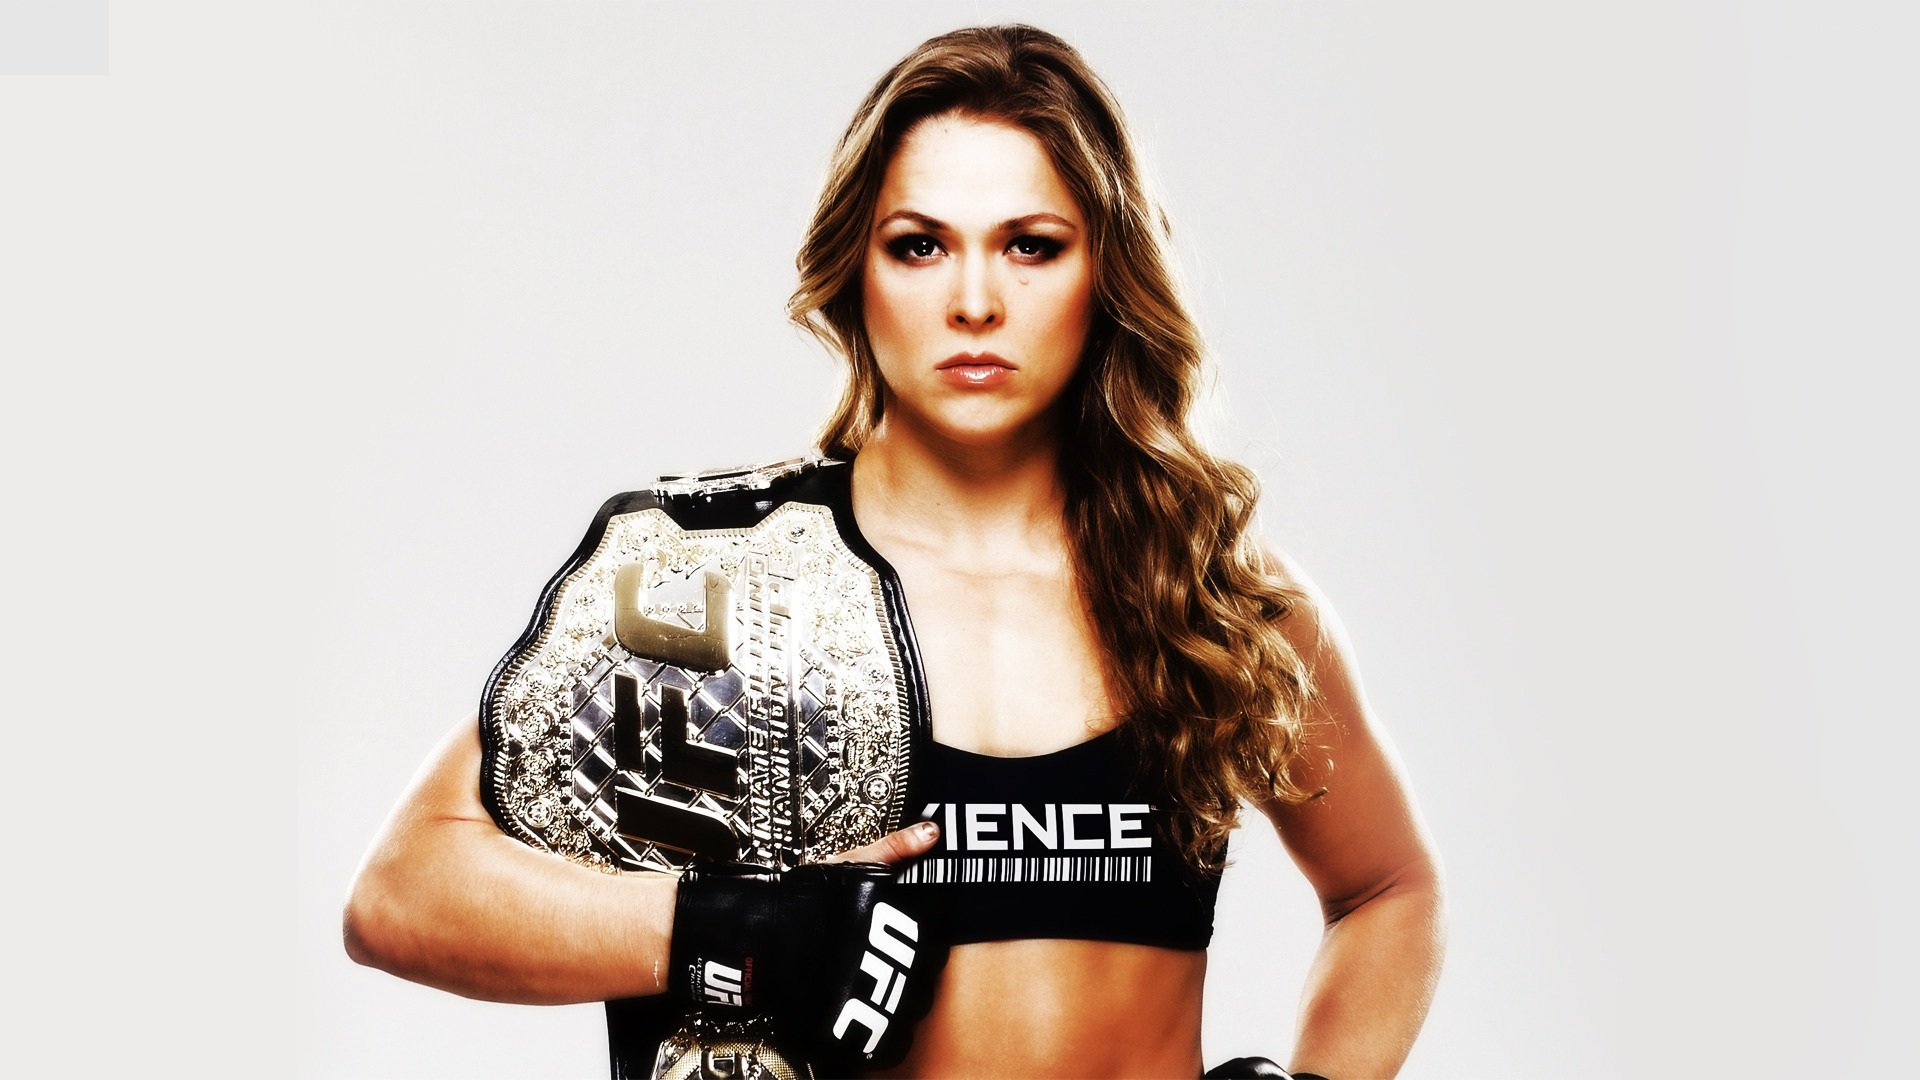 Download full hd Ronda Rousey desktop wallpaper ID:243689 for free